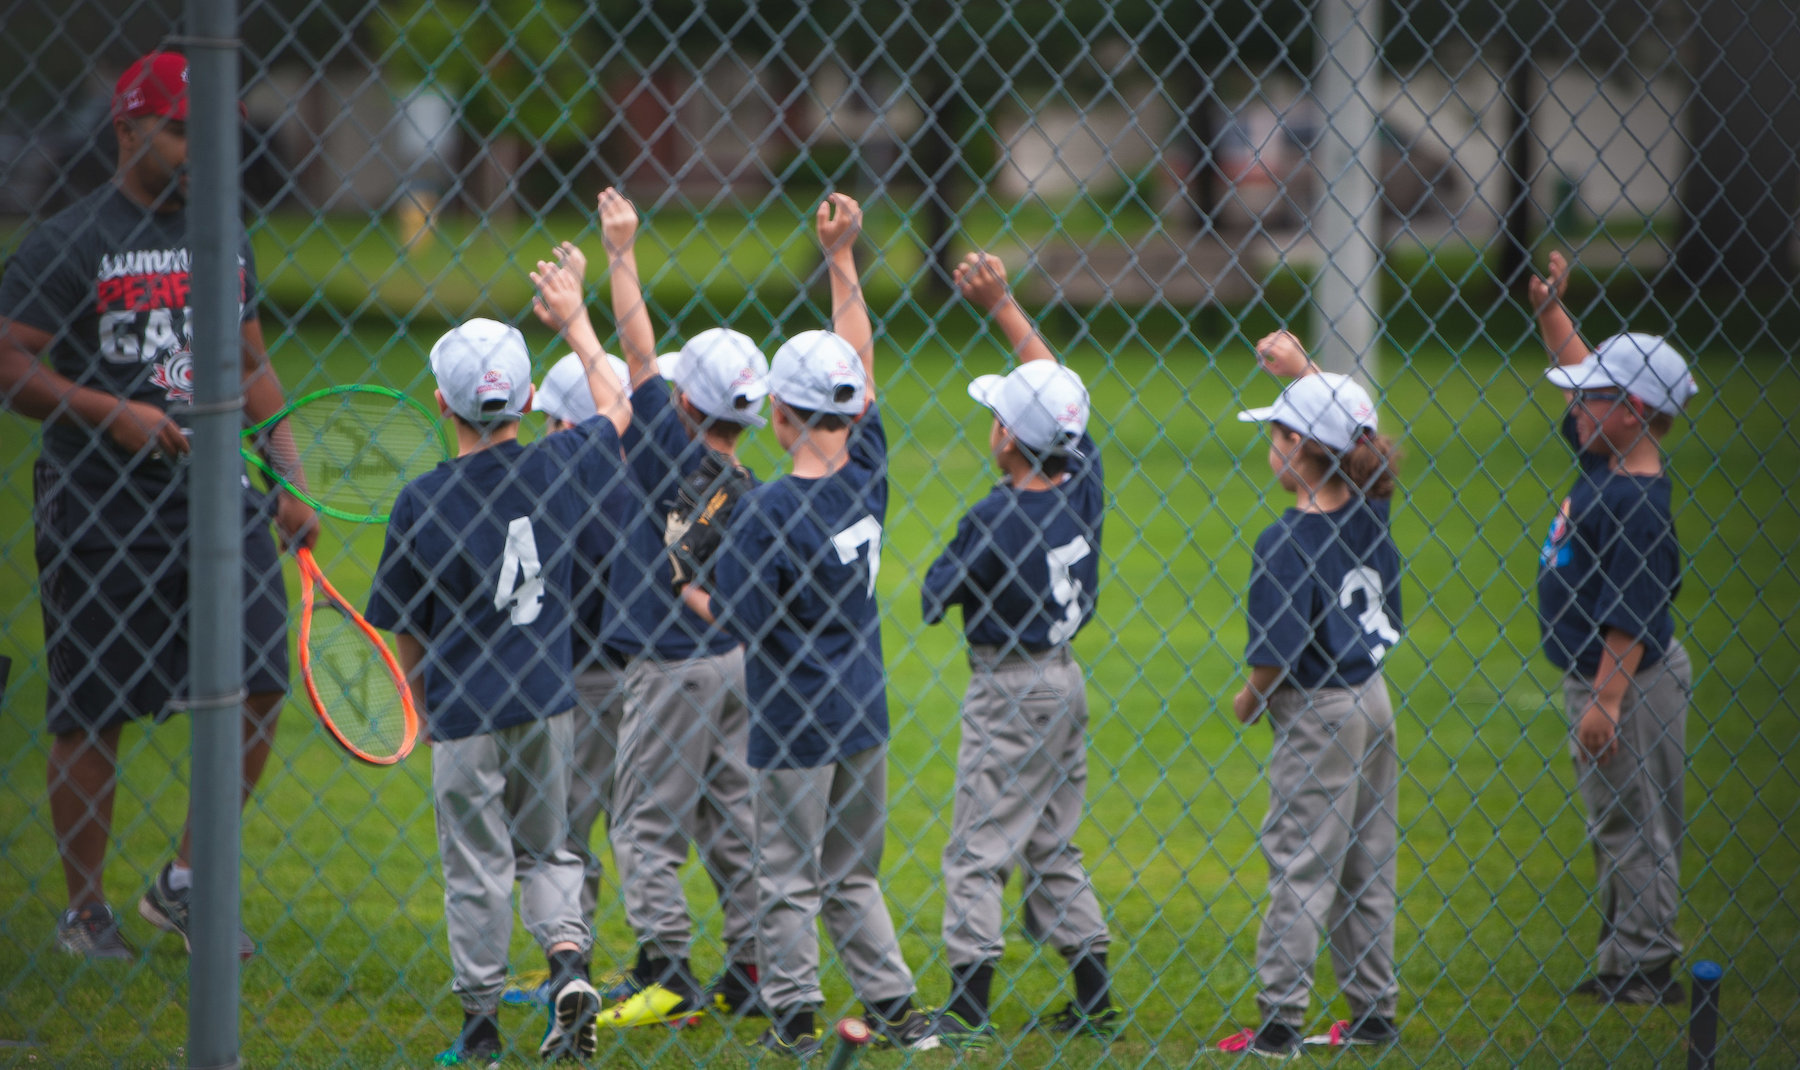 Athlete Development: 3 ways to keep baseball fun at the introductory levels